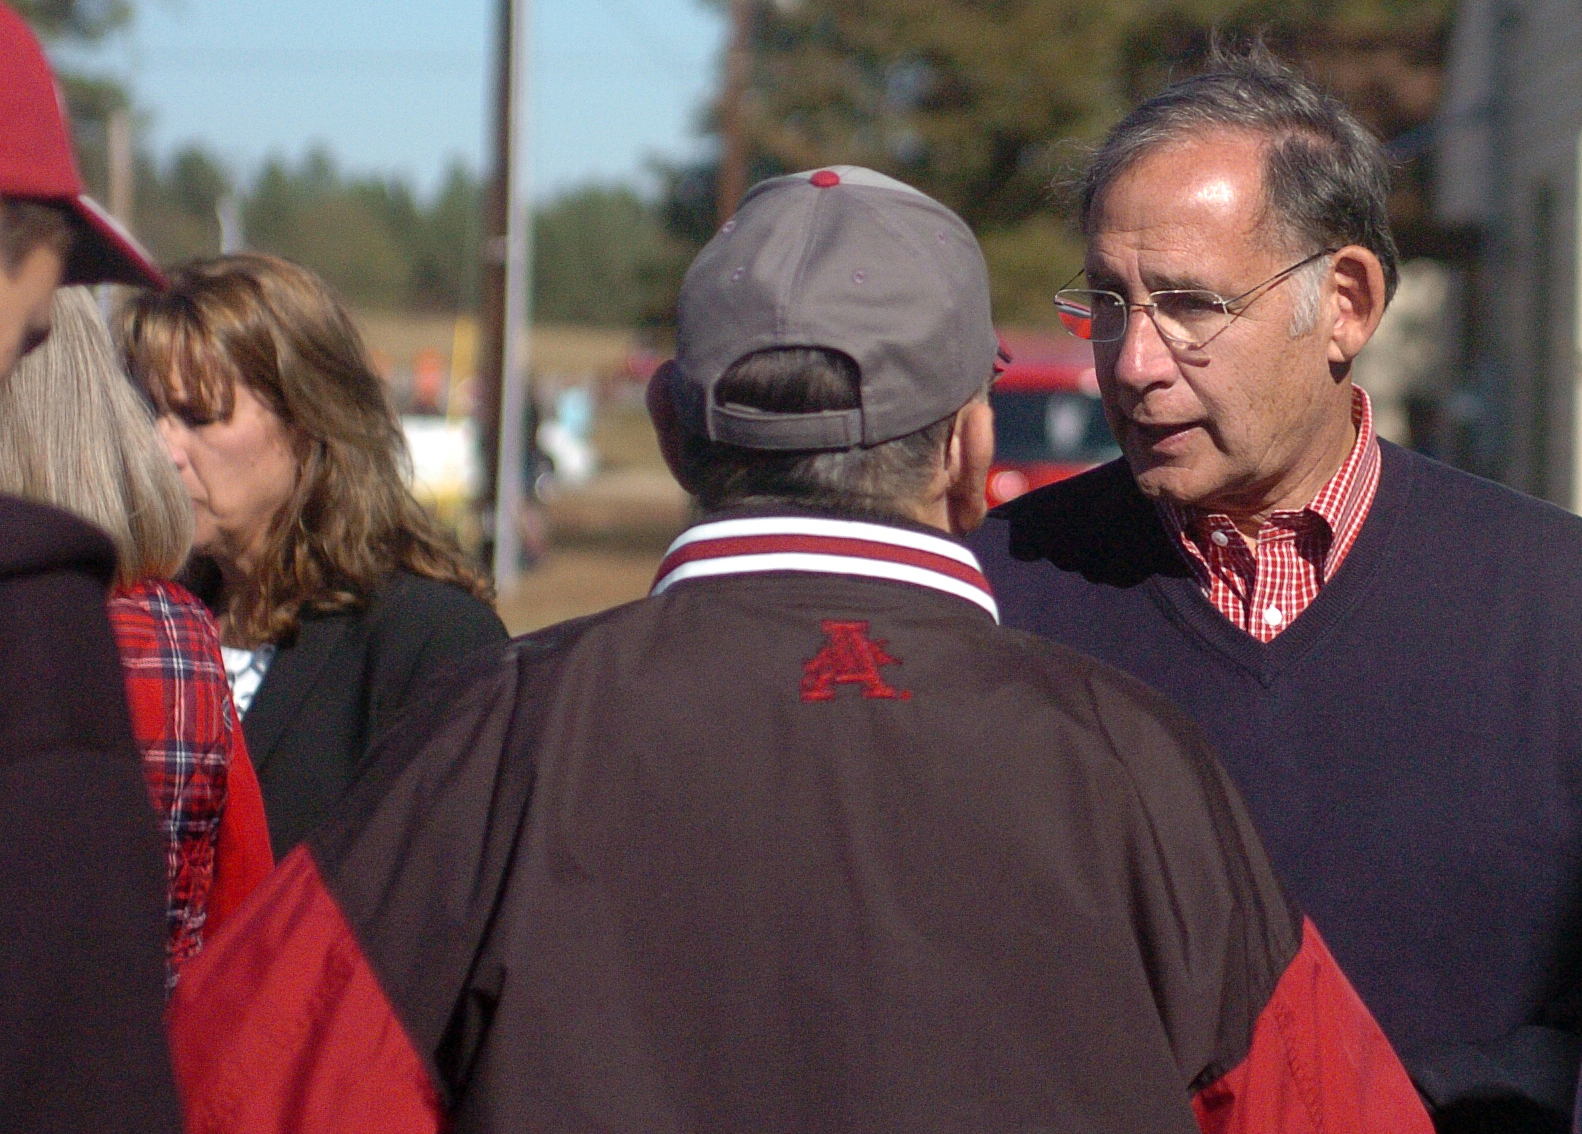 "U.S. Senator, John Boozman, right, speaks with a constituent at the fifth annual Veterans Day Parade at Chaffee Crossing was held on Saturday, November 12, 2016 at the Chaffee Crossing Historic District in Fort Smith. The parade's theme was ""Women In The Military,"" and was held to honor veterans from all branches of service and all U.S. wars. (Please include credit when using this photo) STEVE MARQUEZ/StMarq Photography"